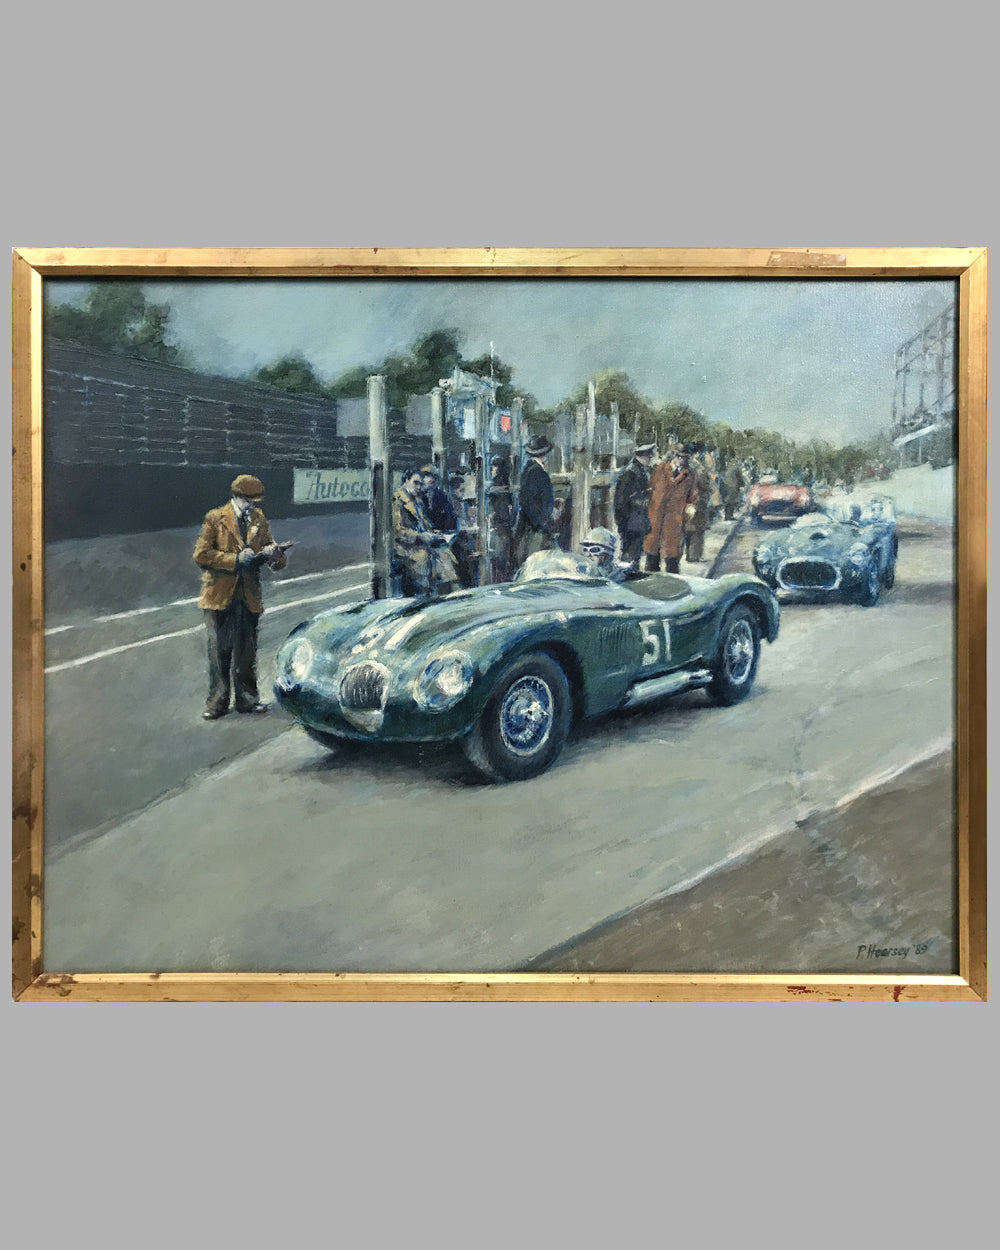 Jaguar C-Type, in the Isle of Man, oil on canvas painting, by Peter Hearsey, UK, 1989